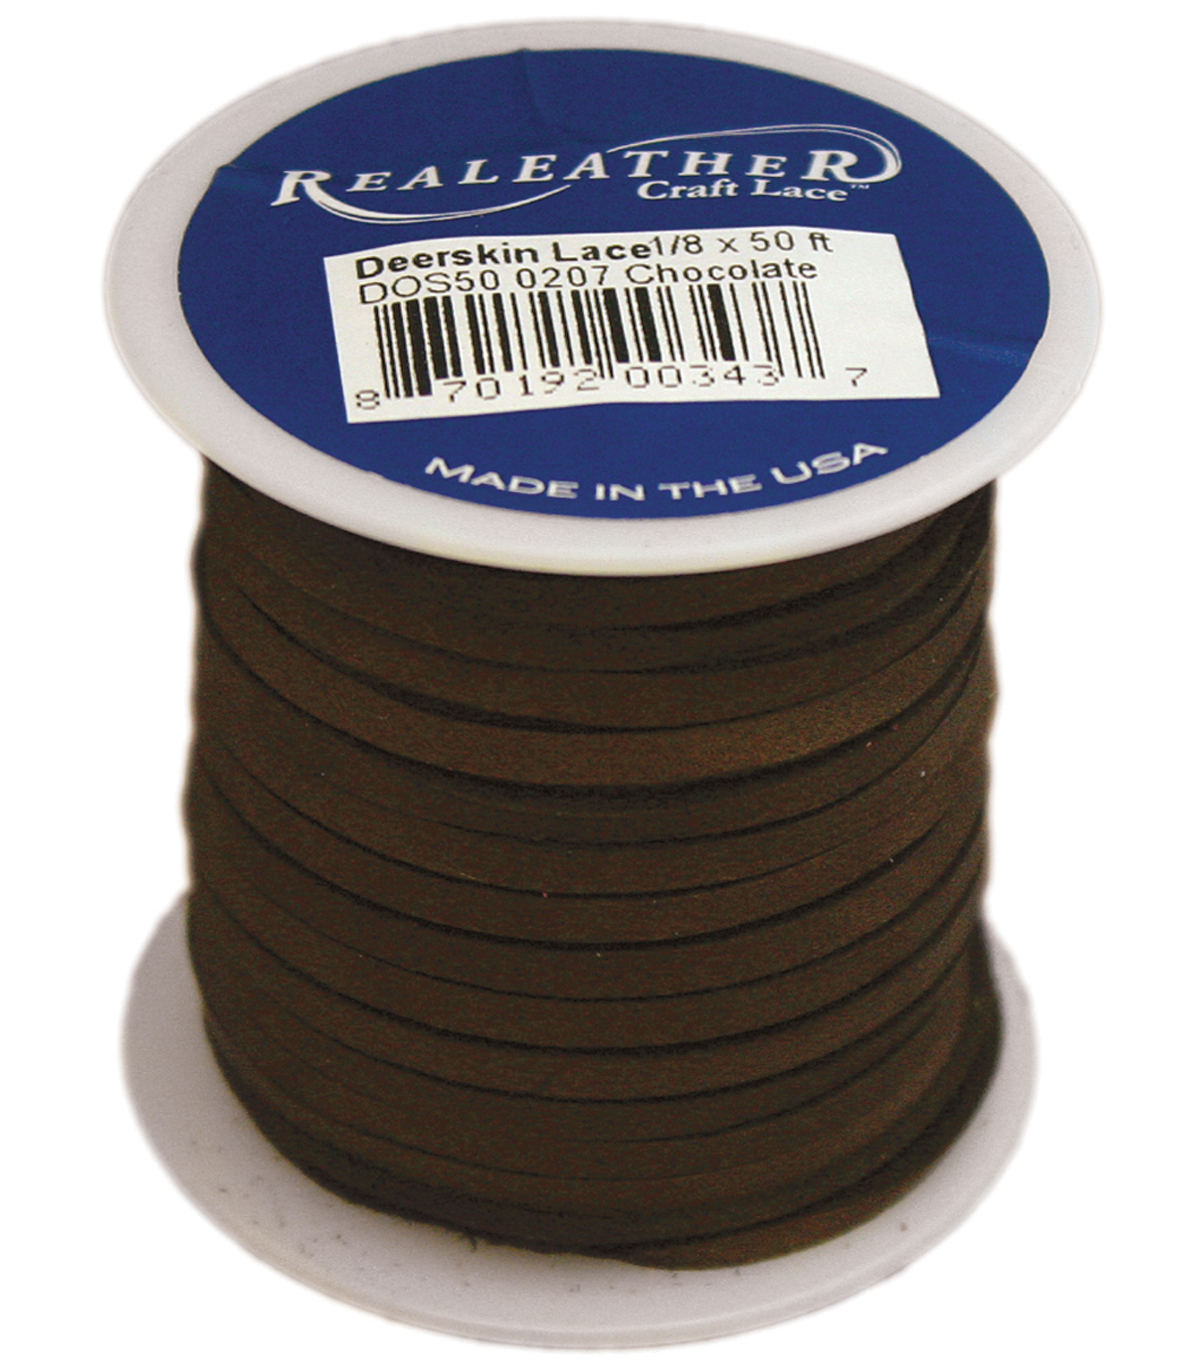 Realeather Crafts Deerskin Lace Spool 0.13 u0027 u0027x50 feet 20a7e3564d136